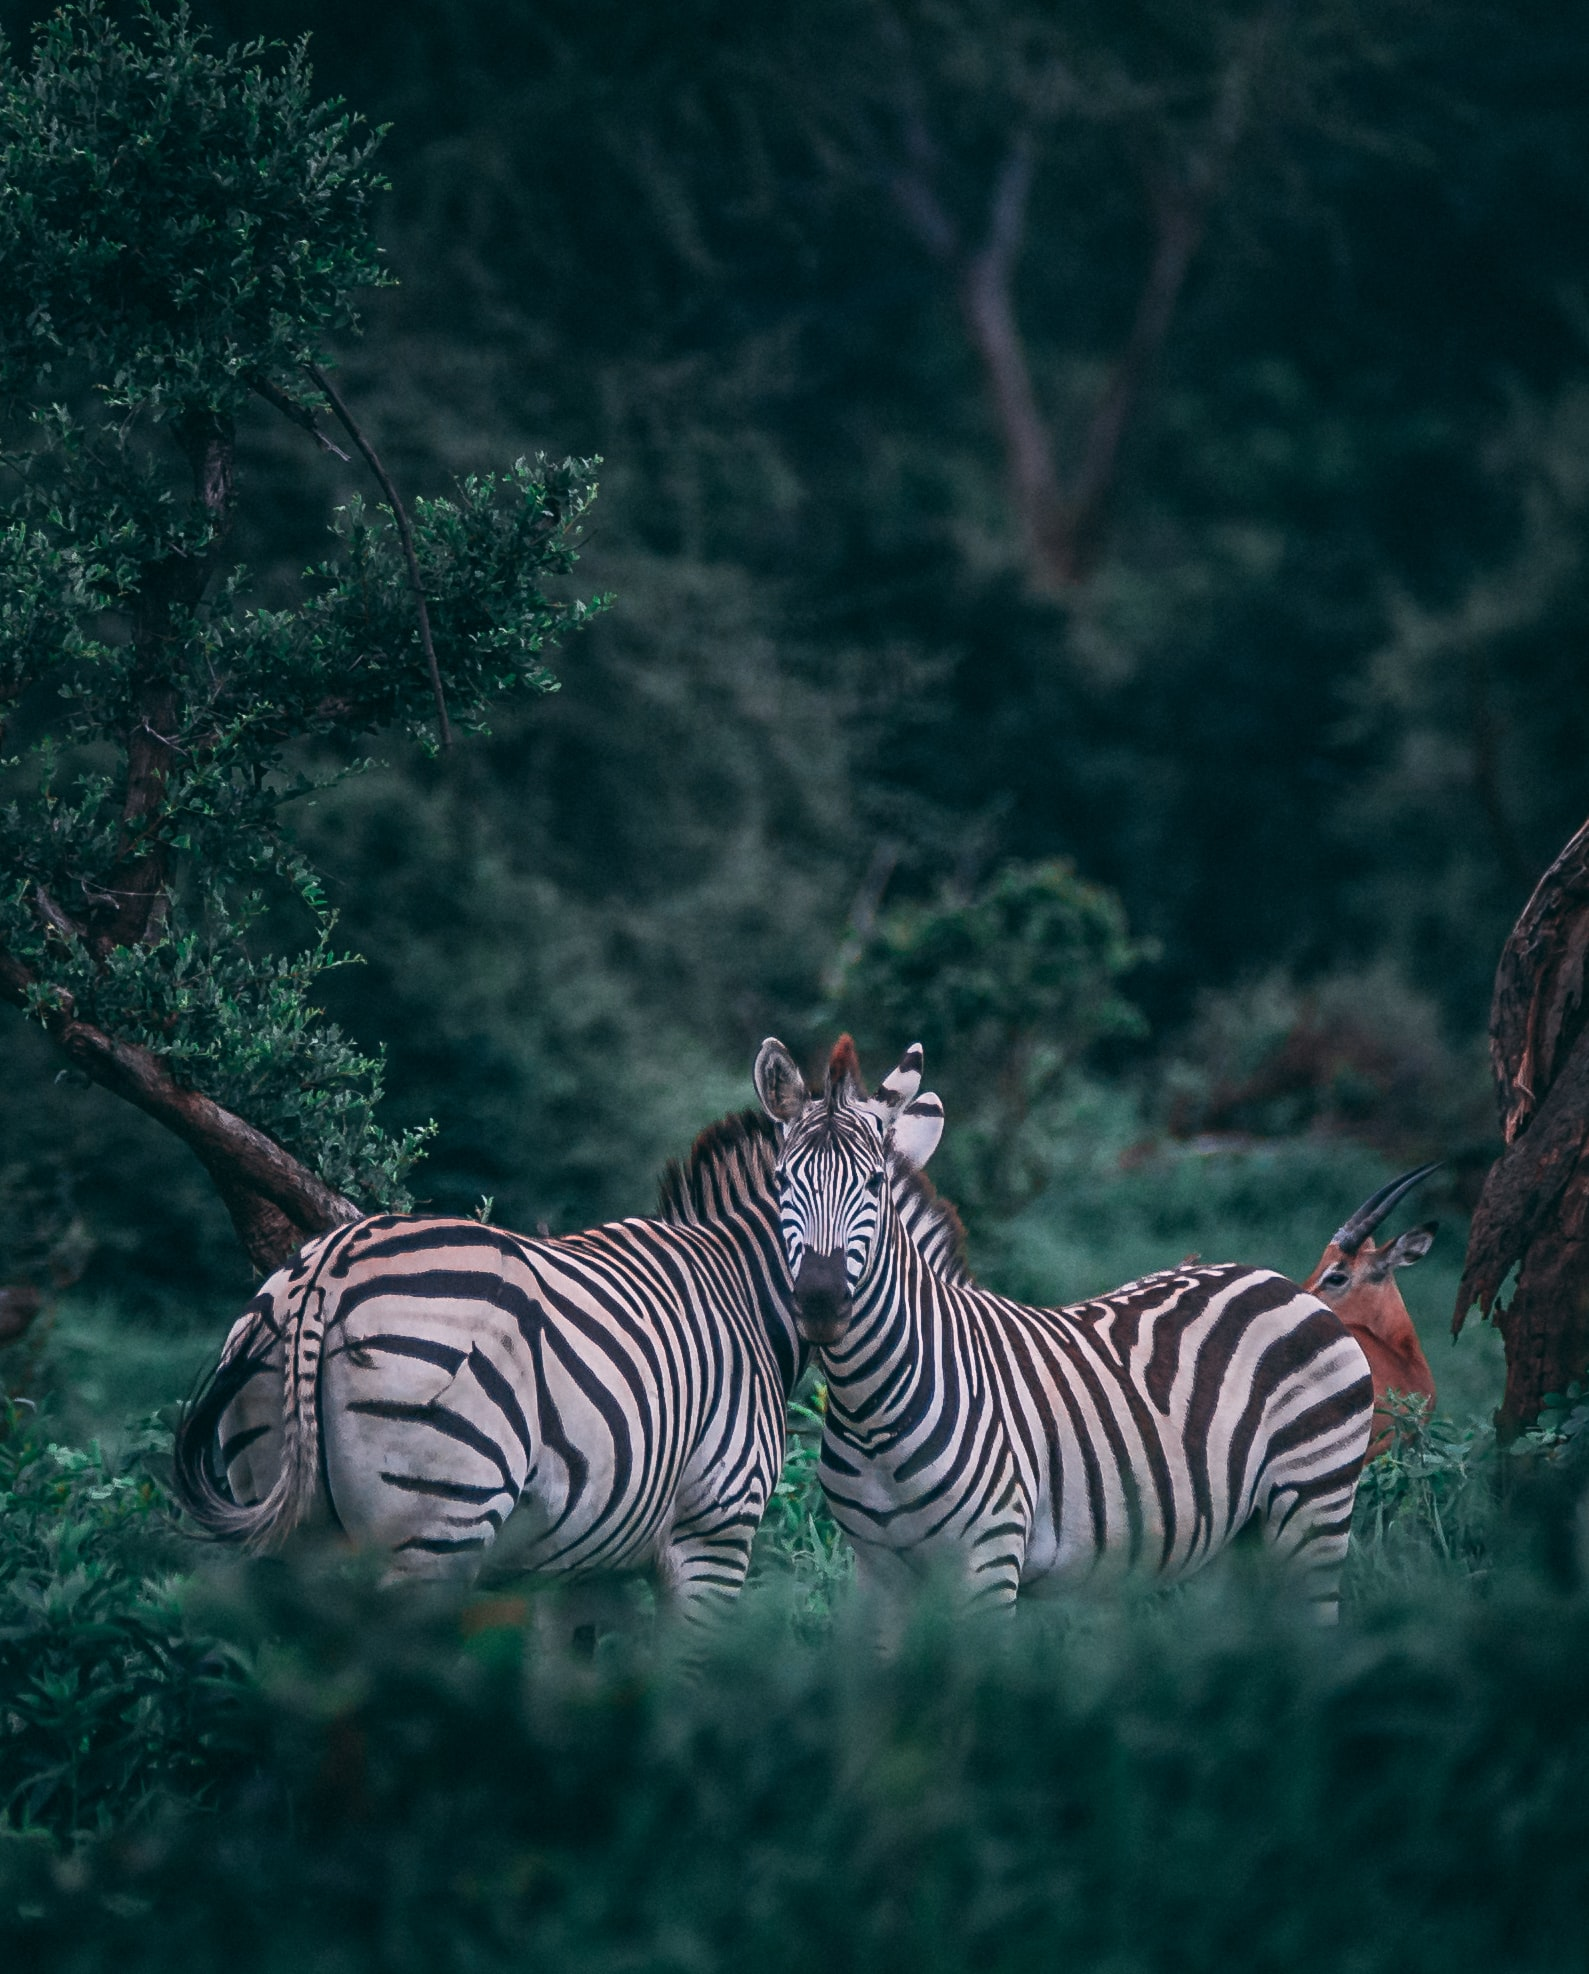 Two zebras in bushes.